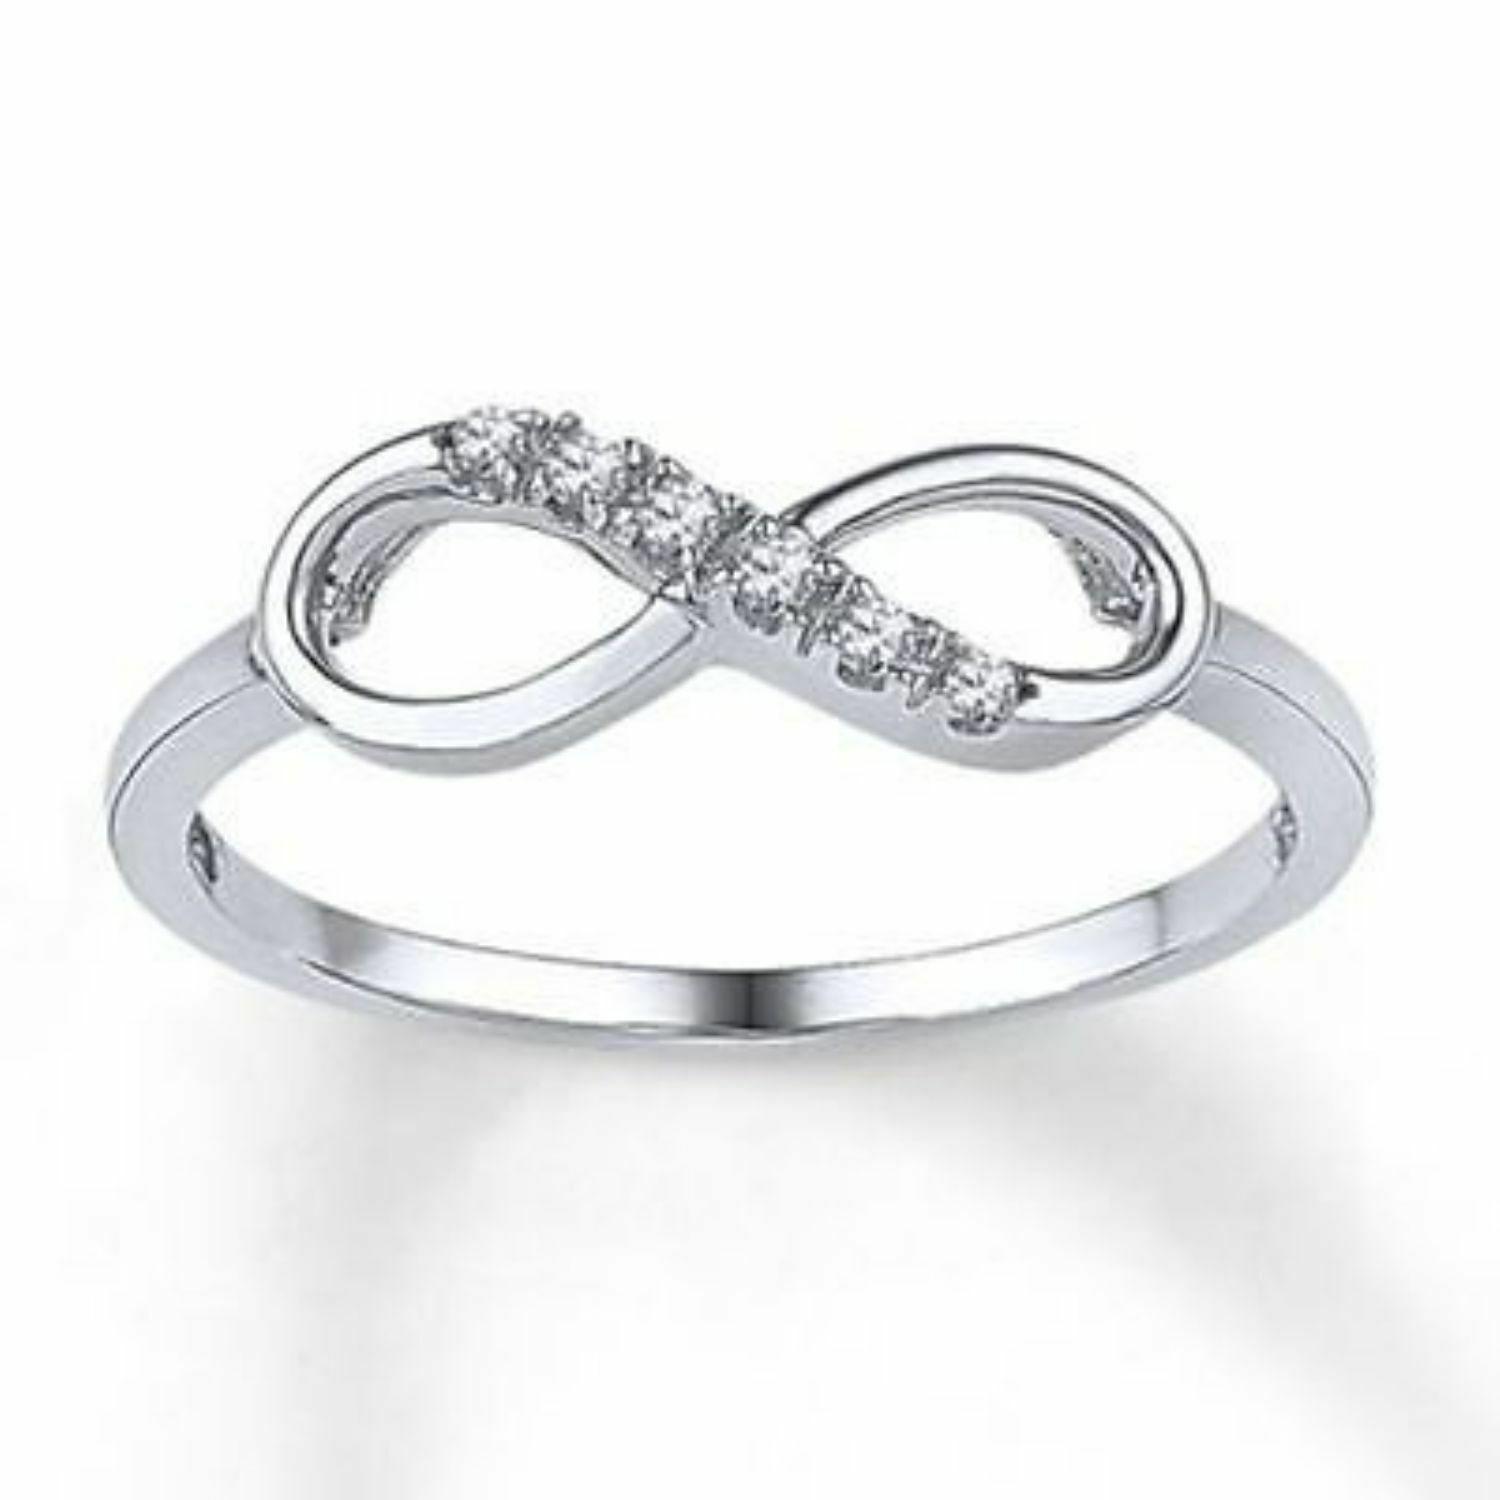 0.30 Carats F VS1 Round Brilliant Cut Natural Diamonds Infinity Ring In 14K gold